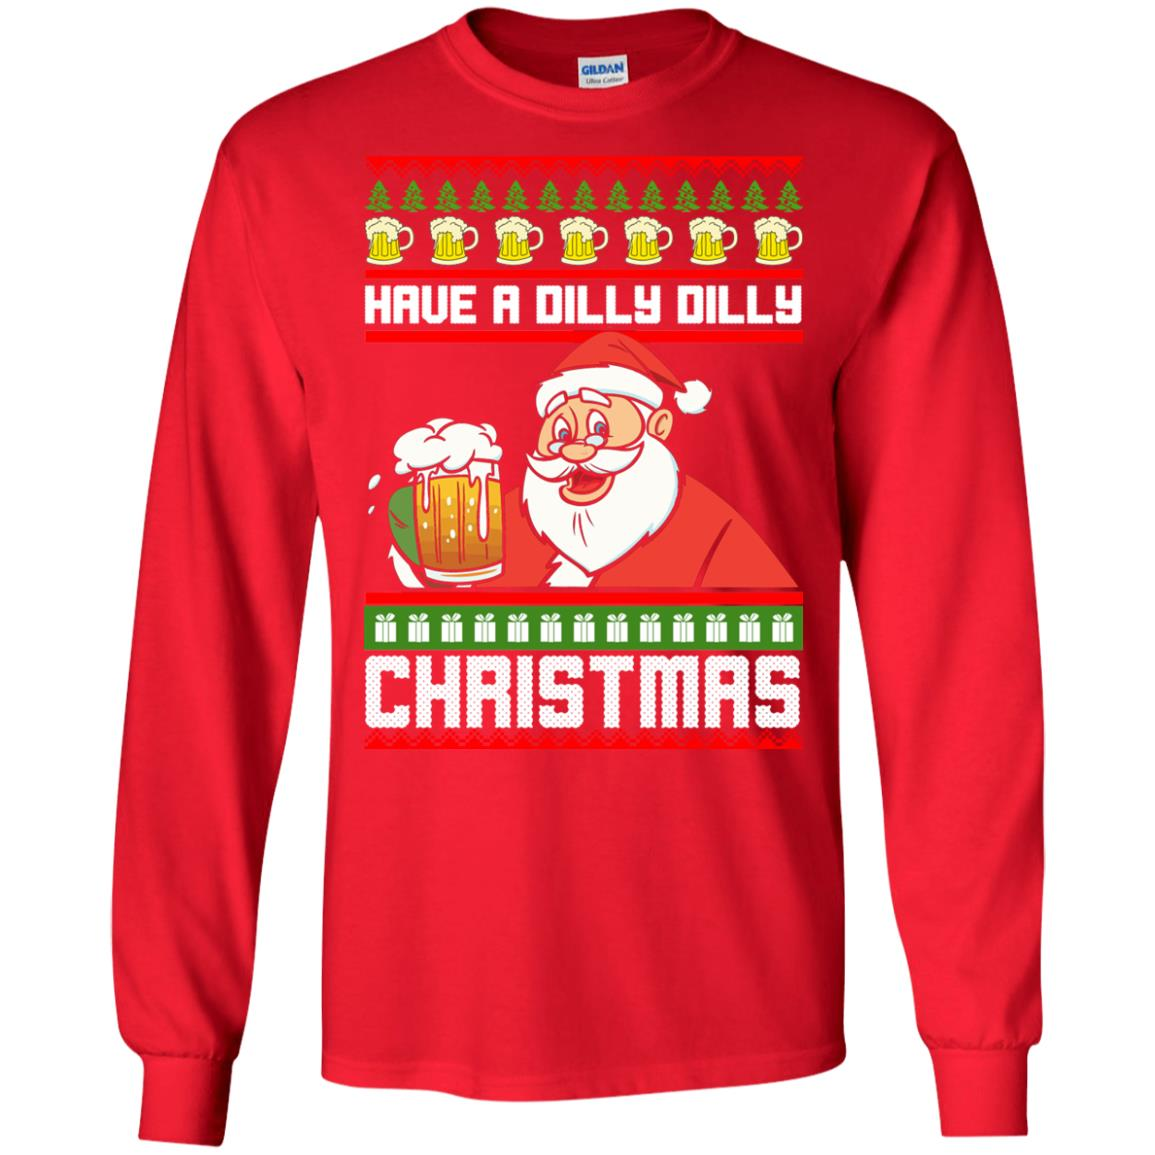 image 6128 - Have a Dilly Dilly Christmas Ugly Sweatshirt, Long Sleeve